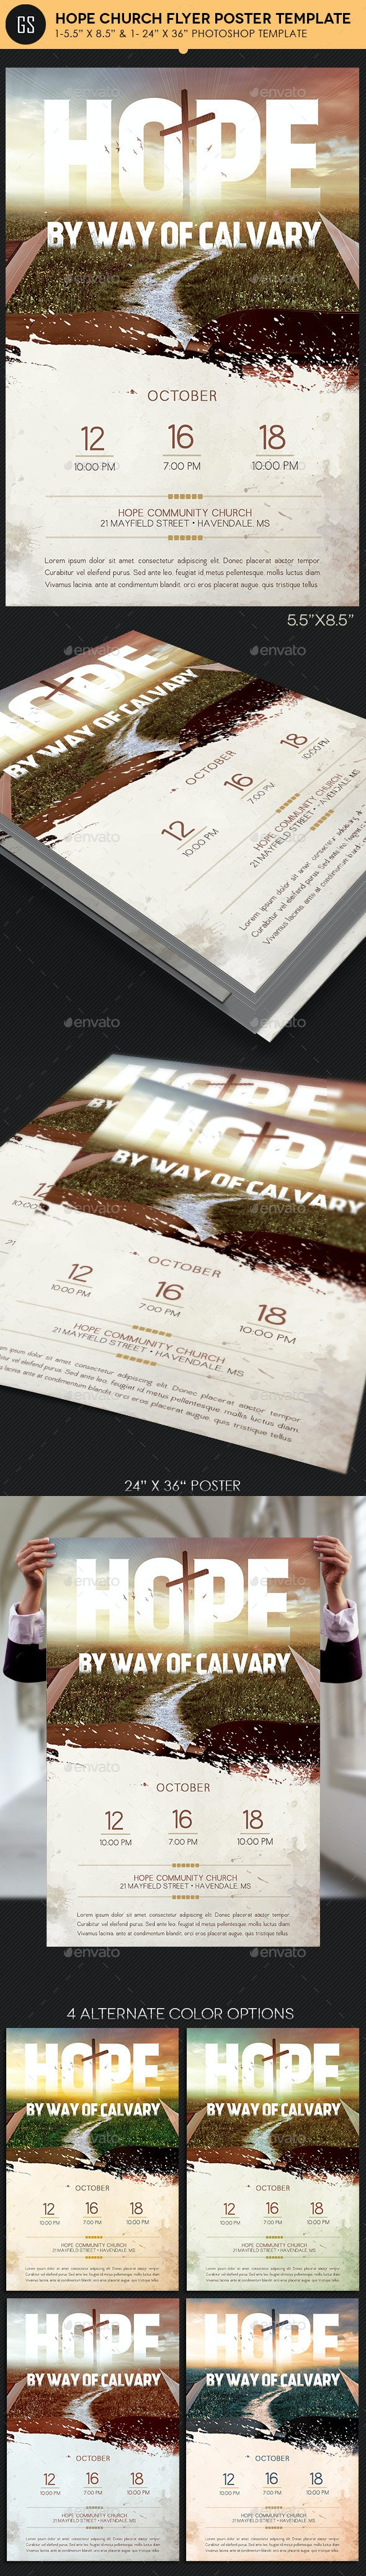 Hope Church Flyer Poster Template - Church Flyers